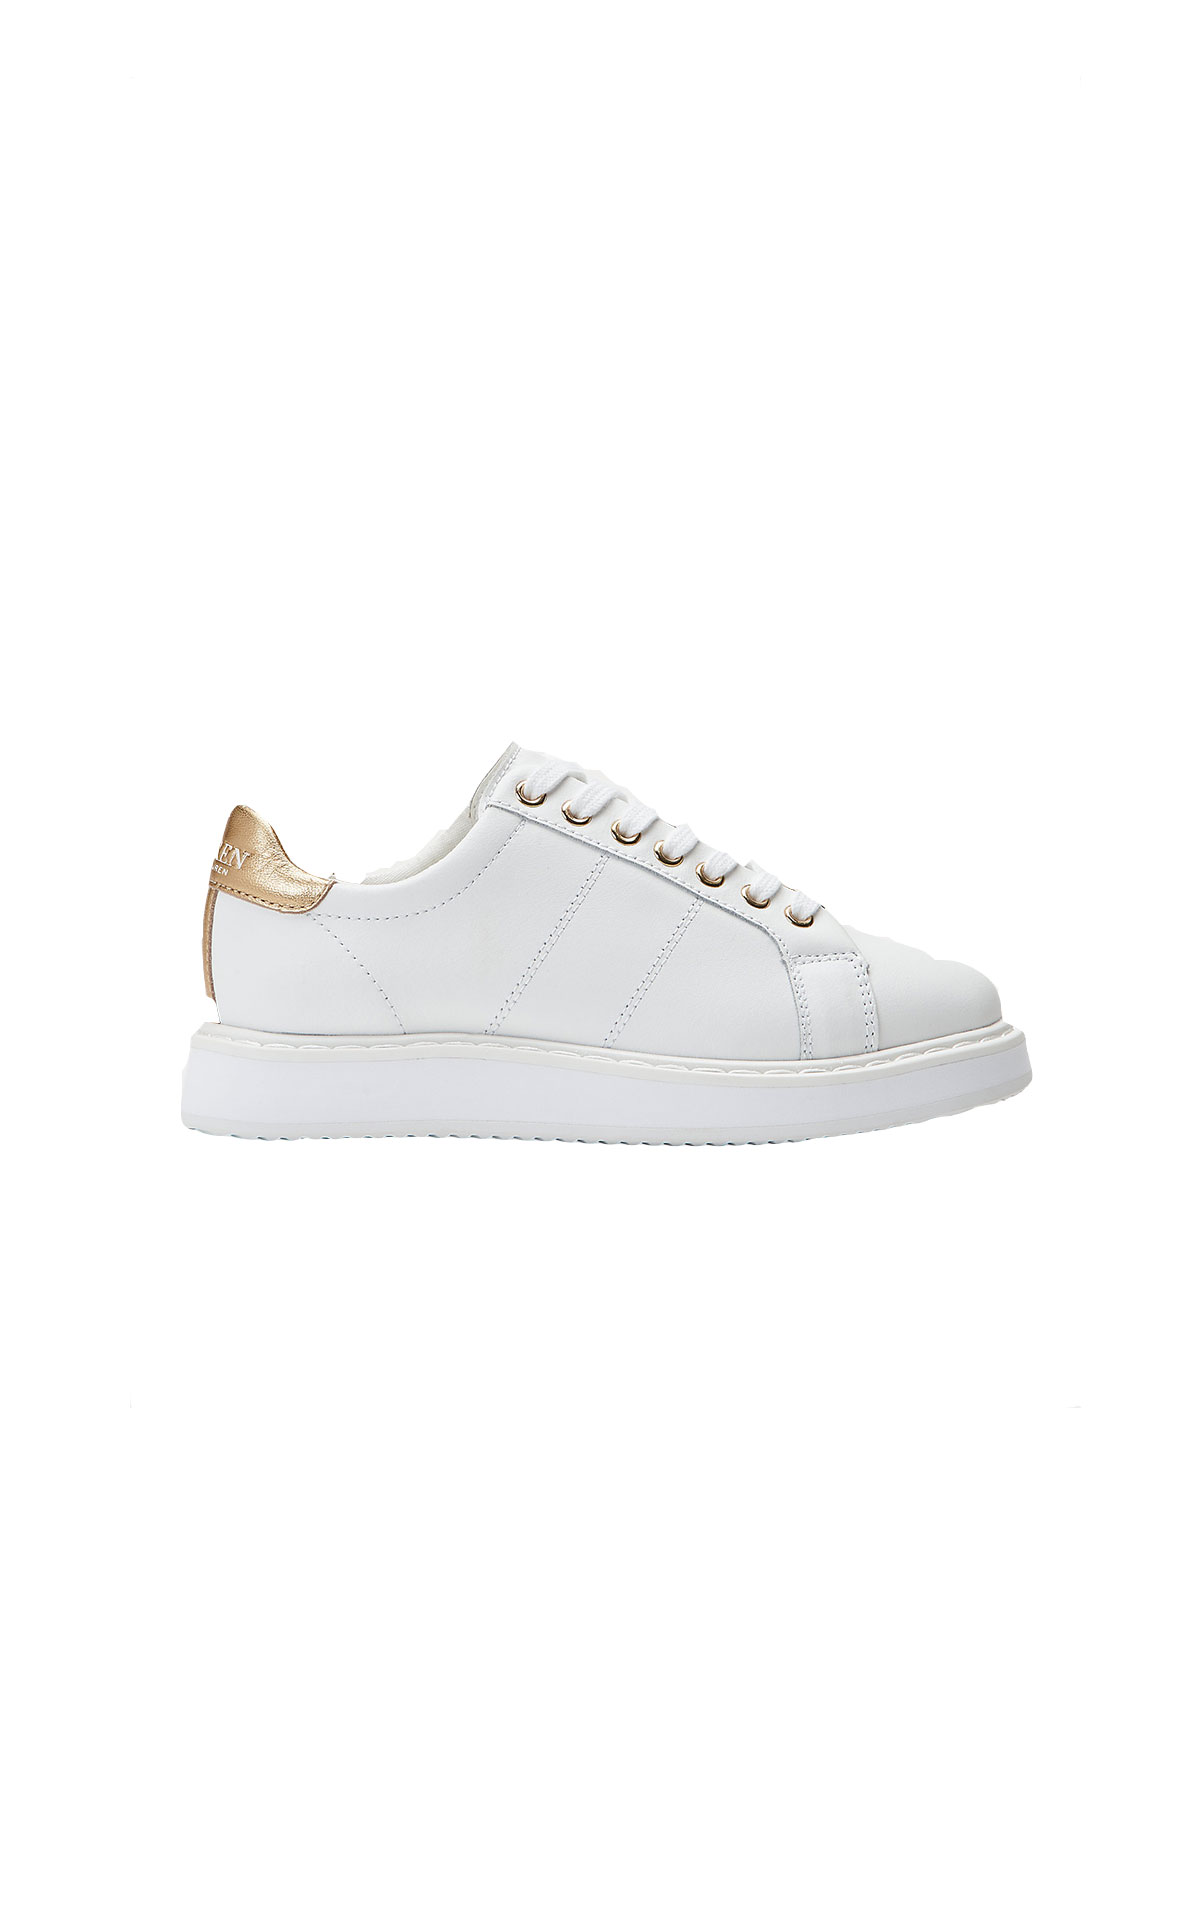 Polo Ralph Lauren Angeline leather trainer from Bicester Village